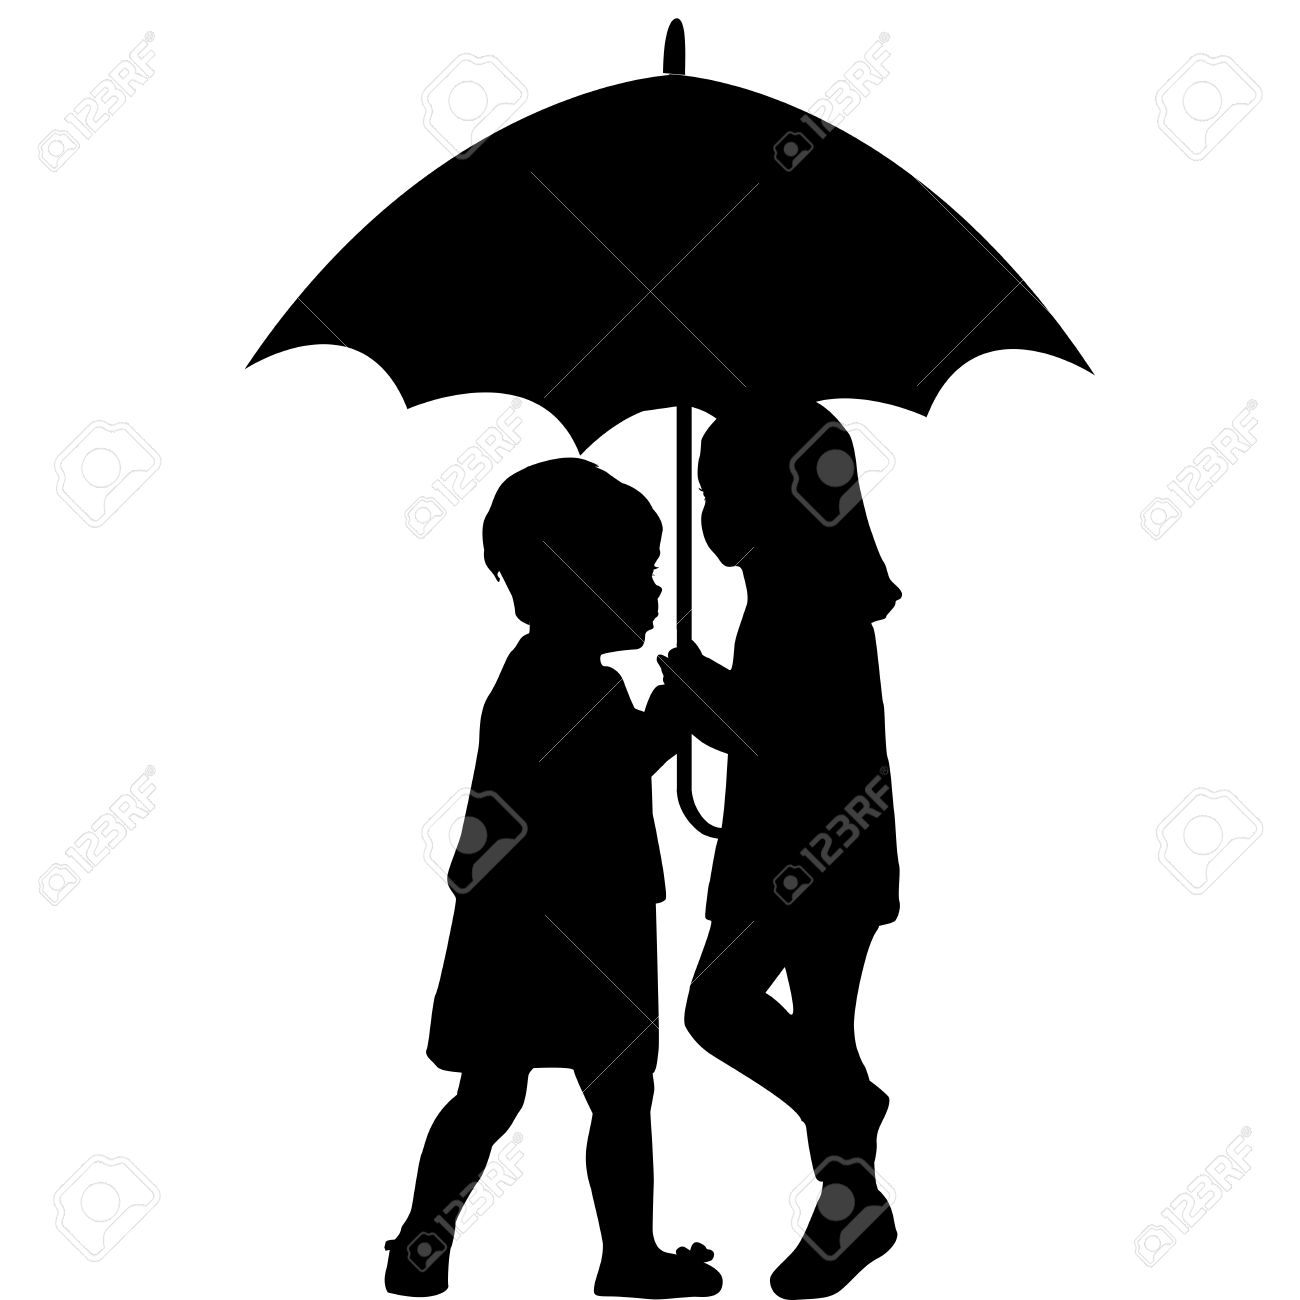 1300x1300 Lady Standing Umbrella Silhouette Clipart Collection